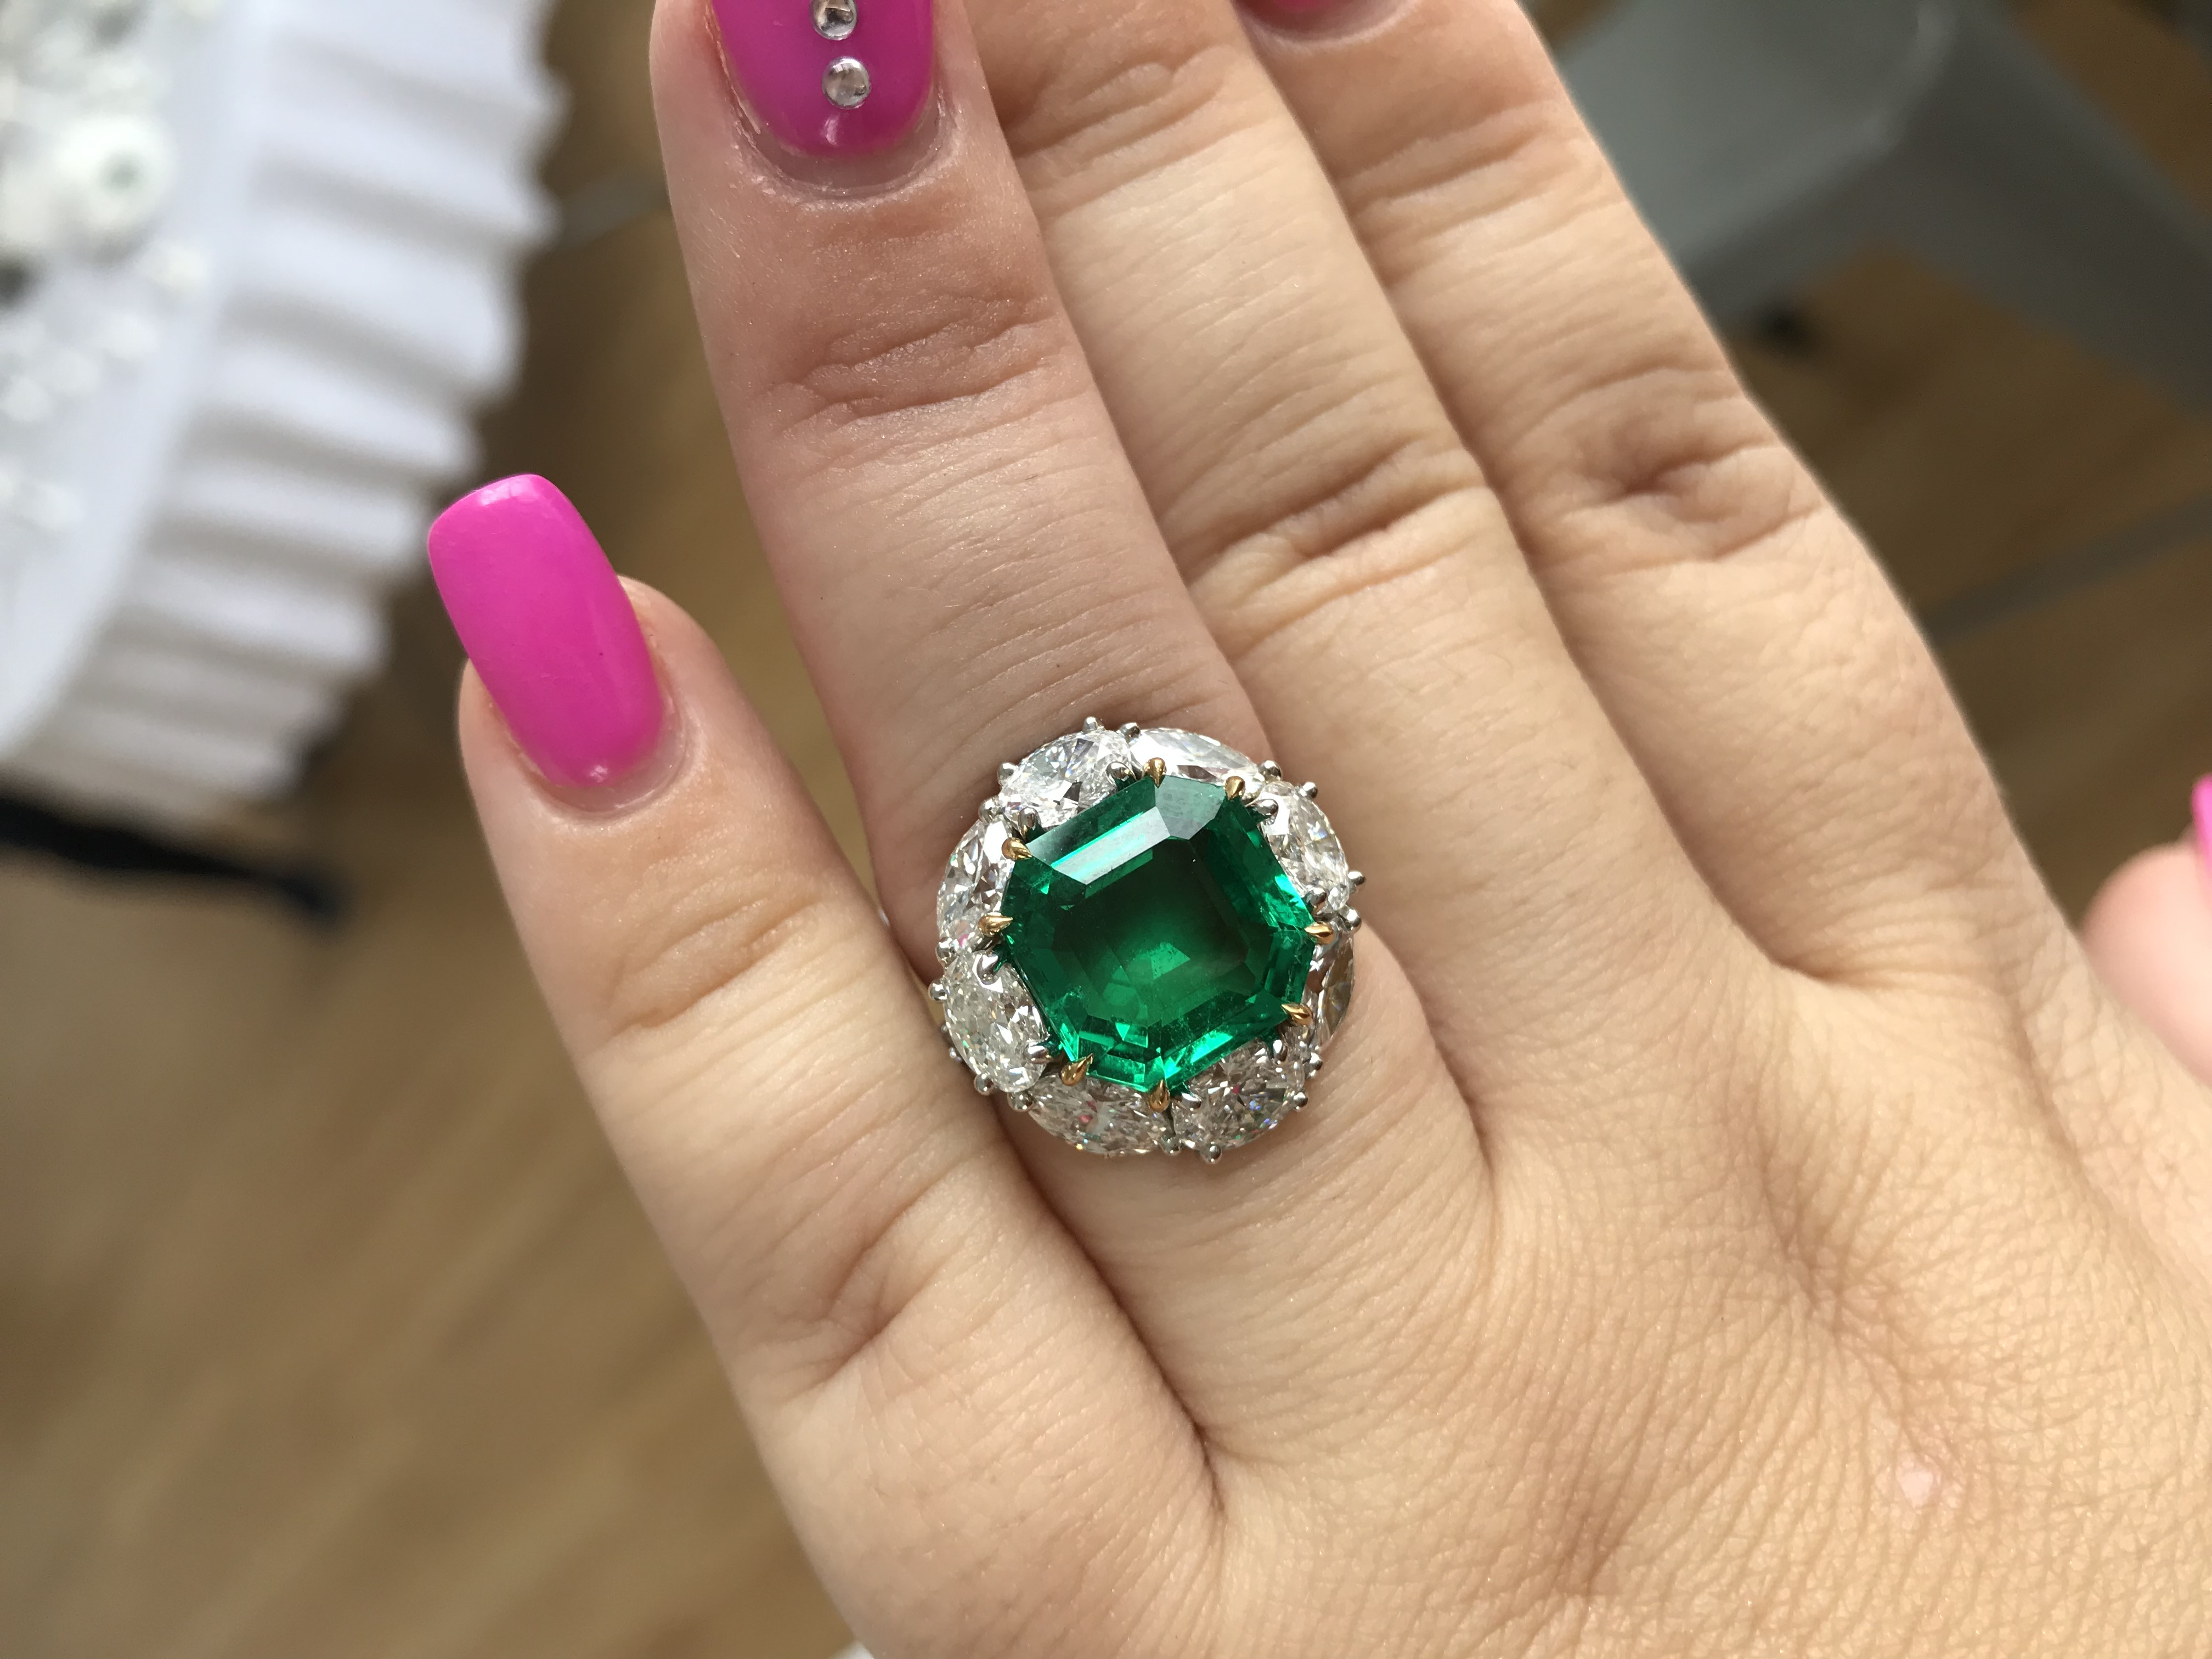 Colored Gemstone Trends in 2020